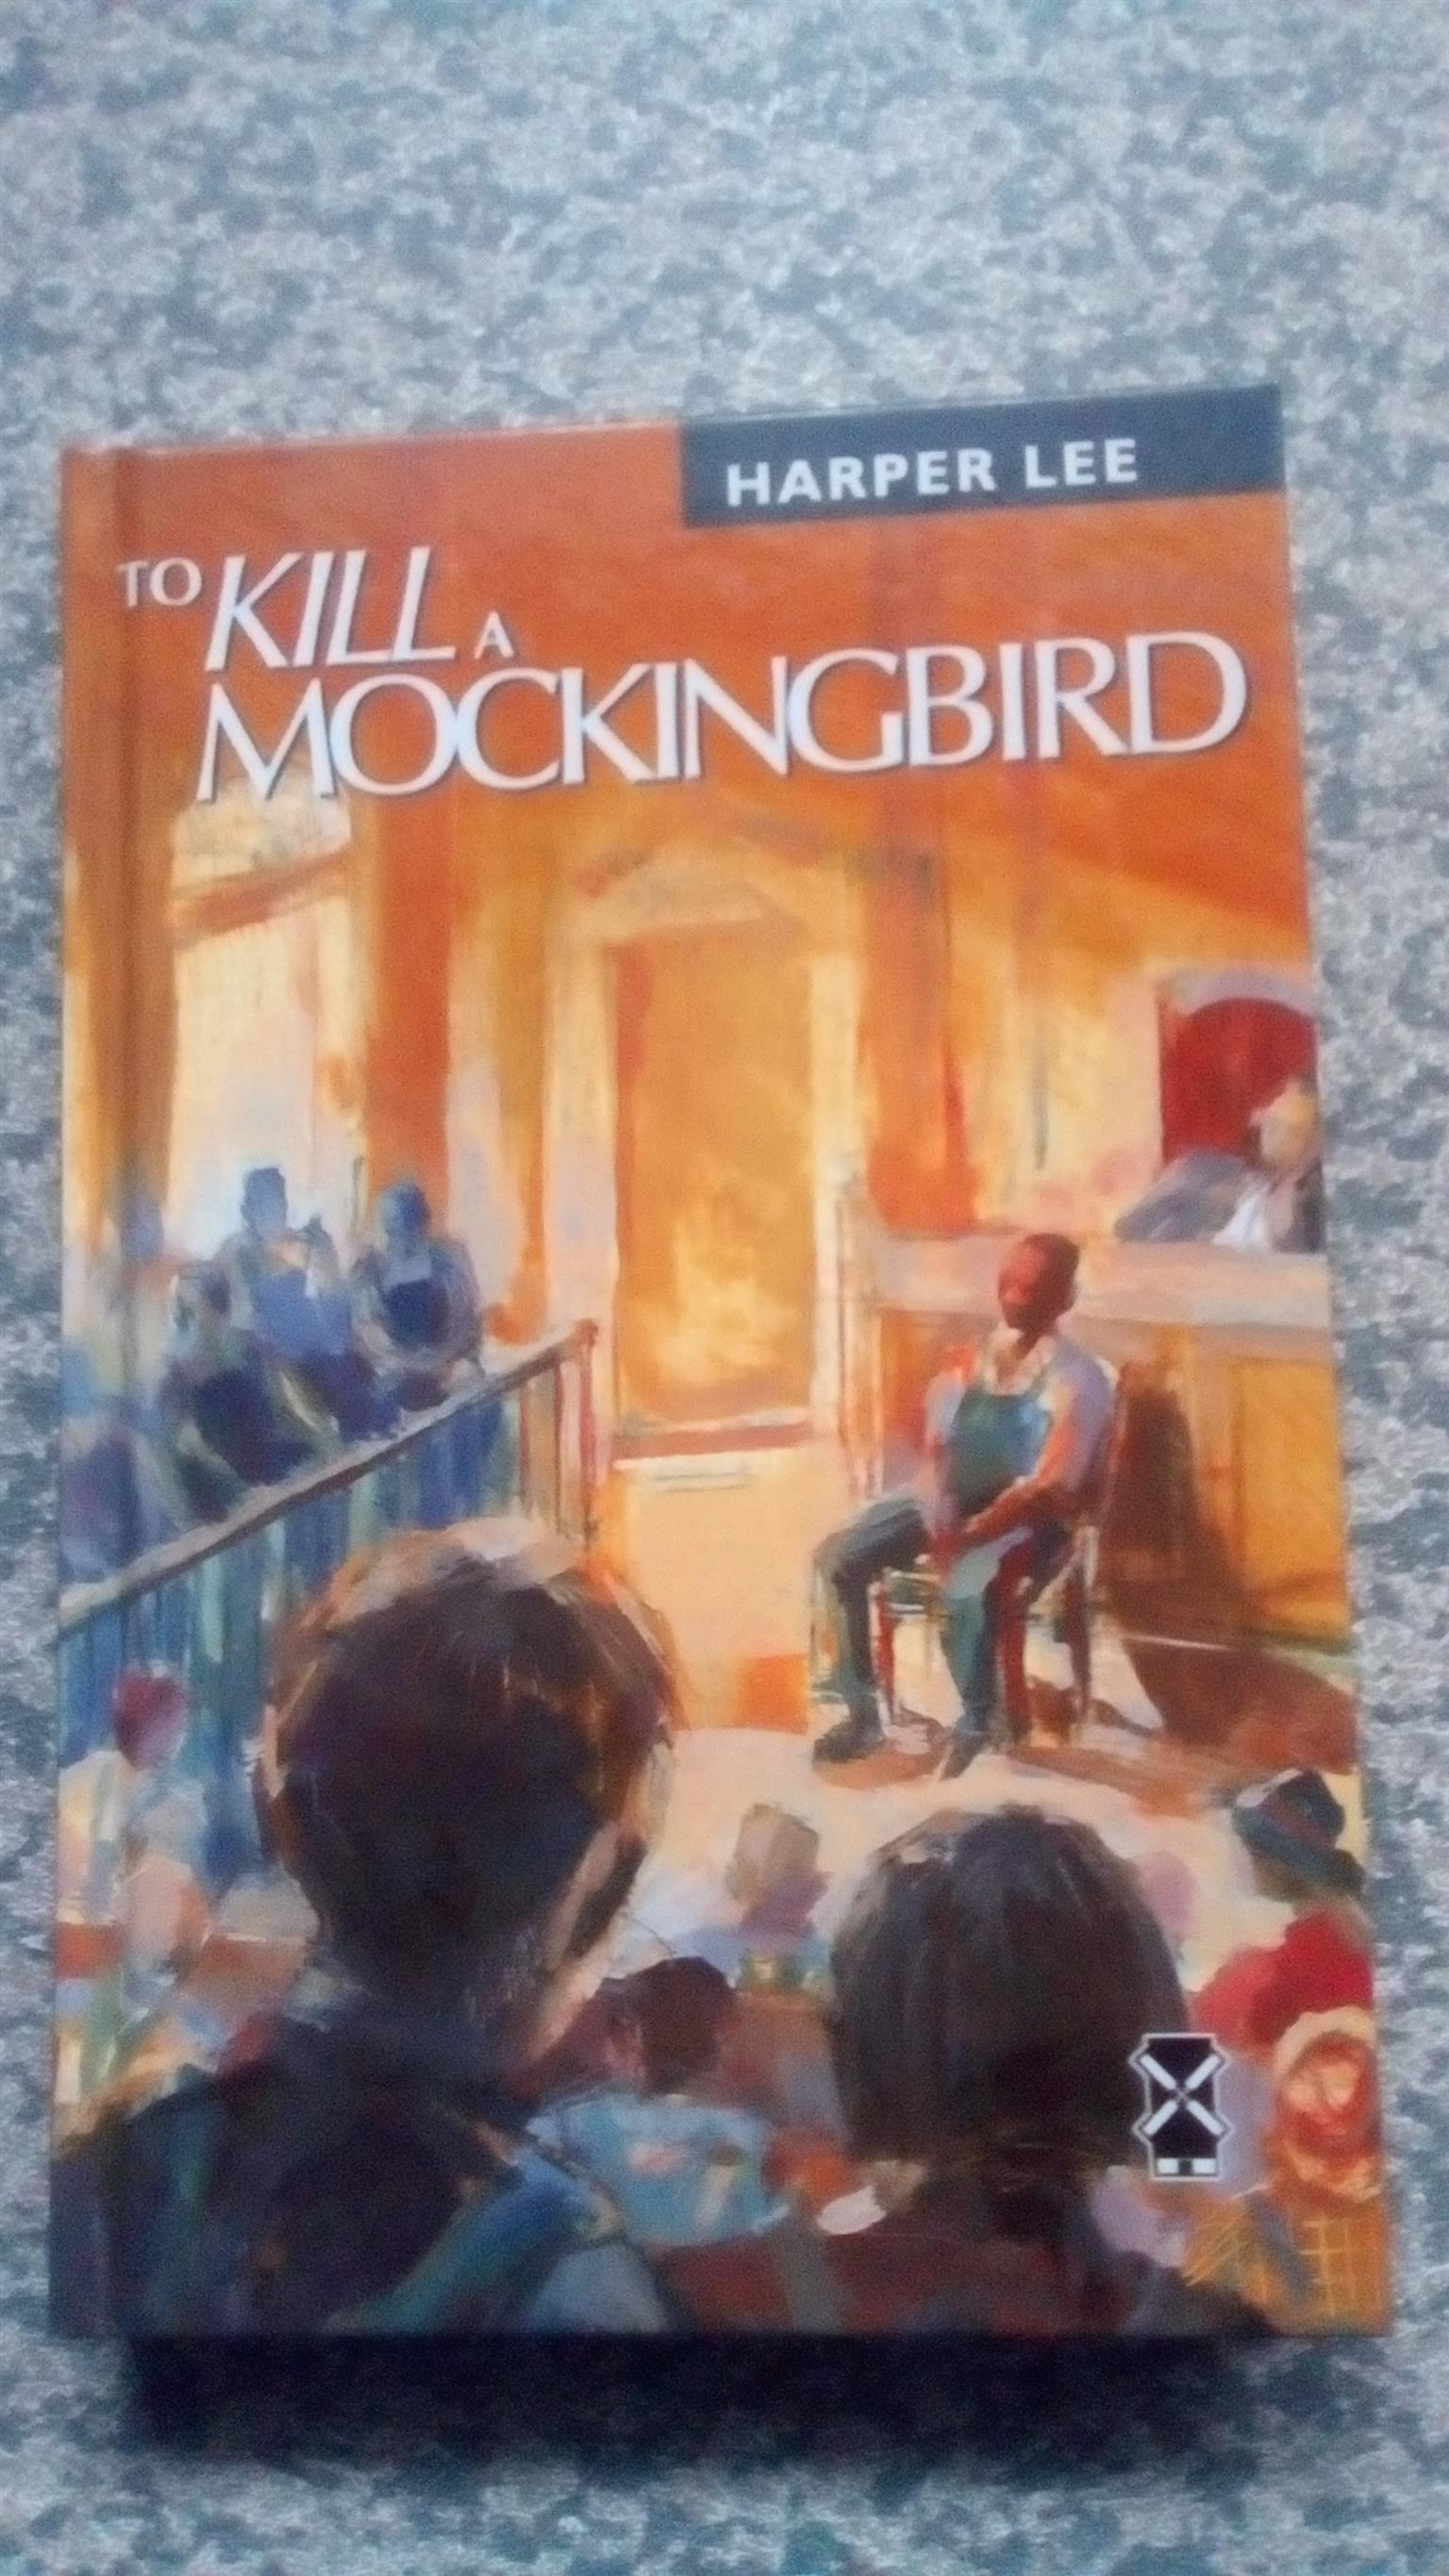 To kill a mocking bird by Harper Lee (hard cover)